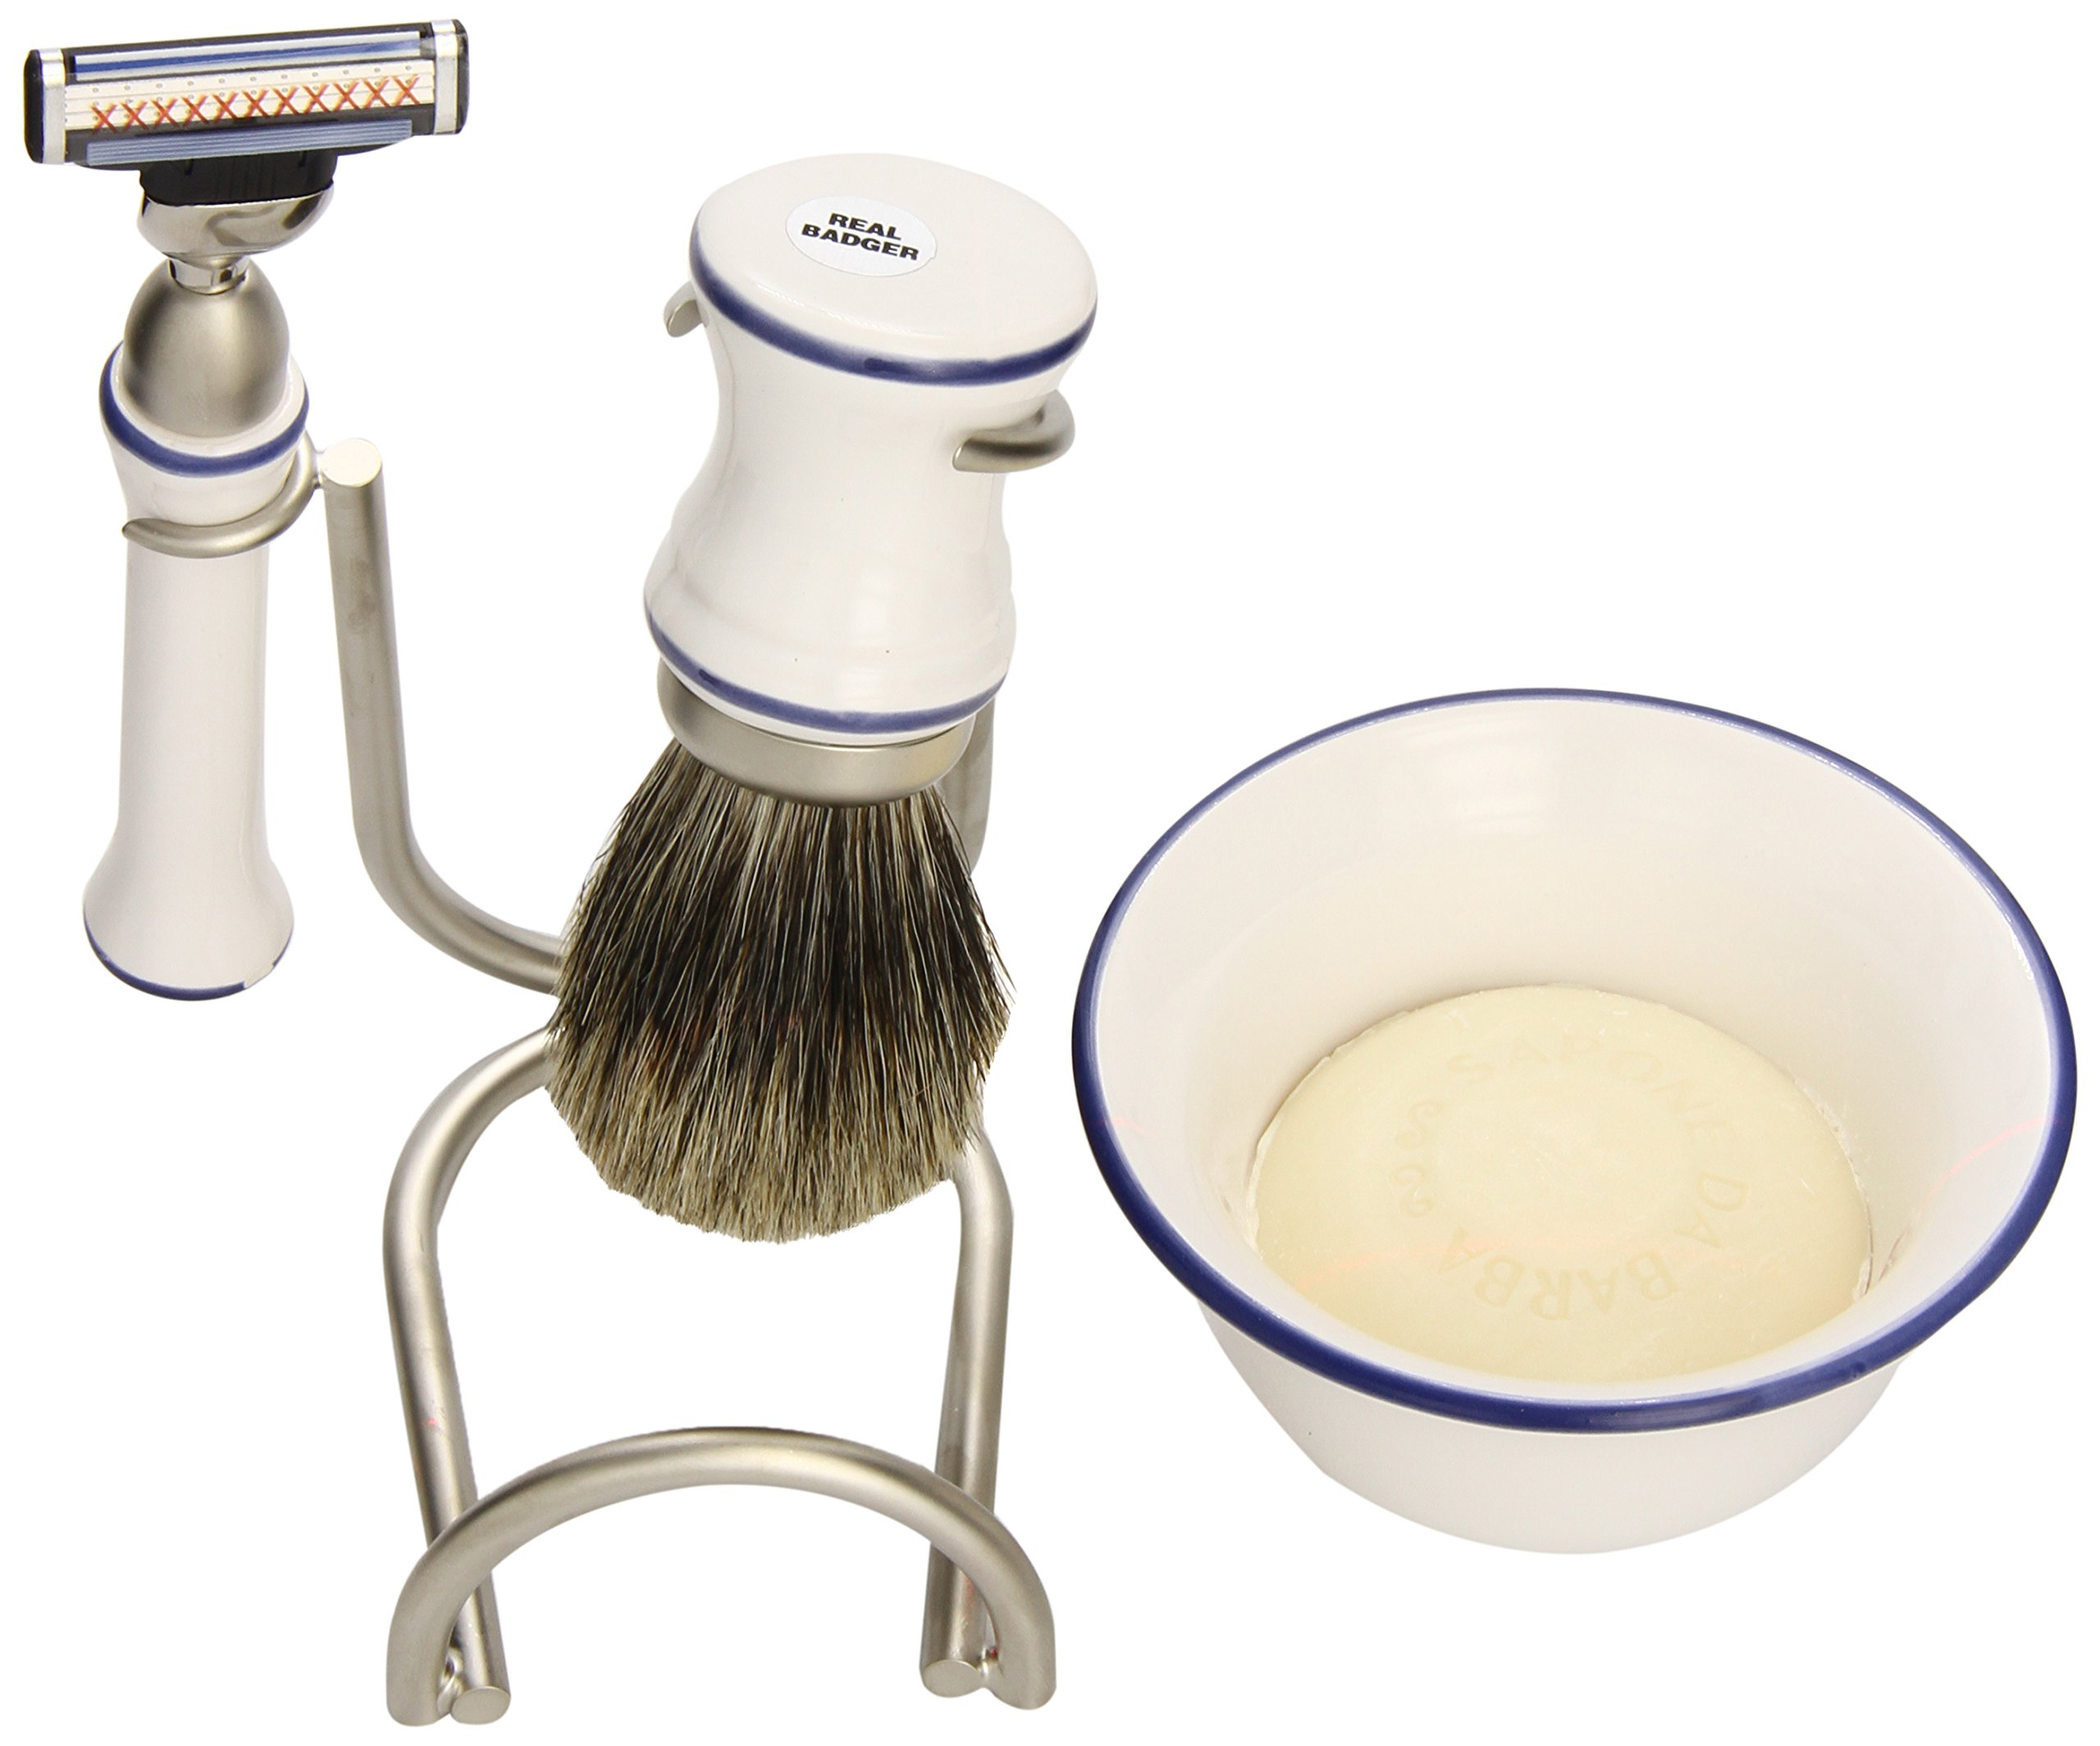 Swissco 5-Piece Shave Set, Ceramic Bowl, Badger, Mach 3 with Soap, Gift Box